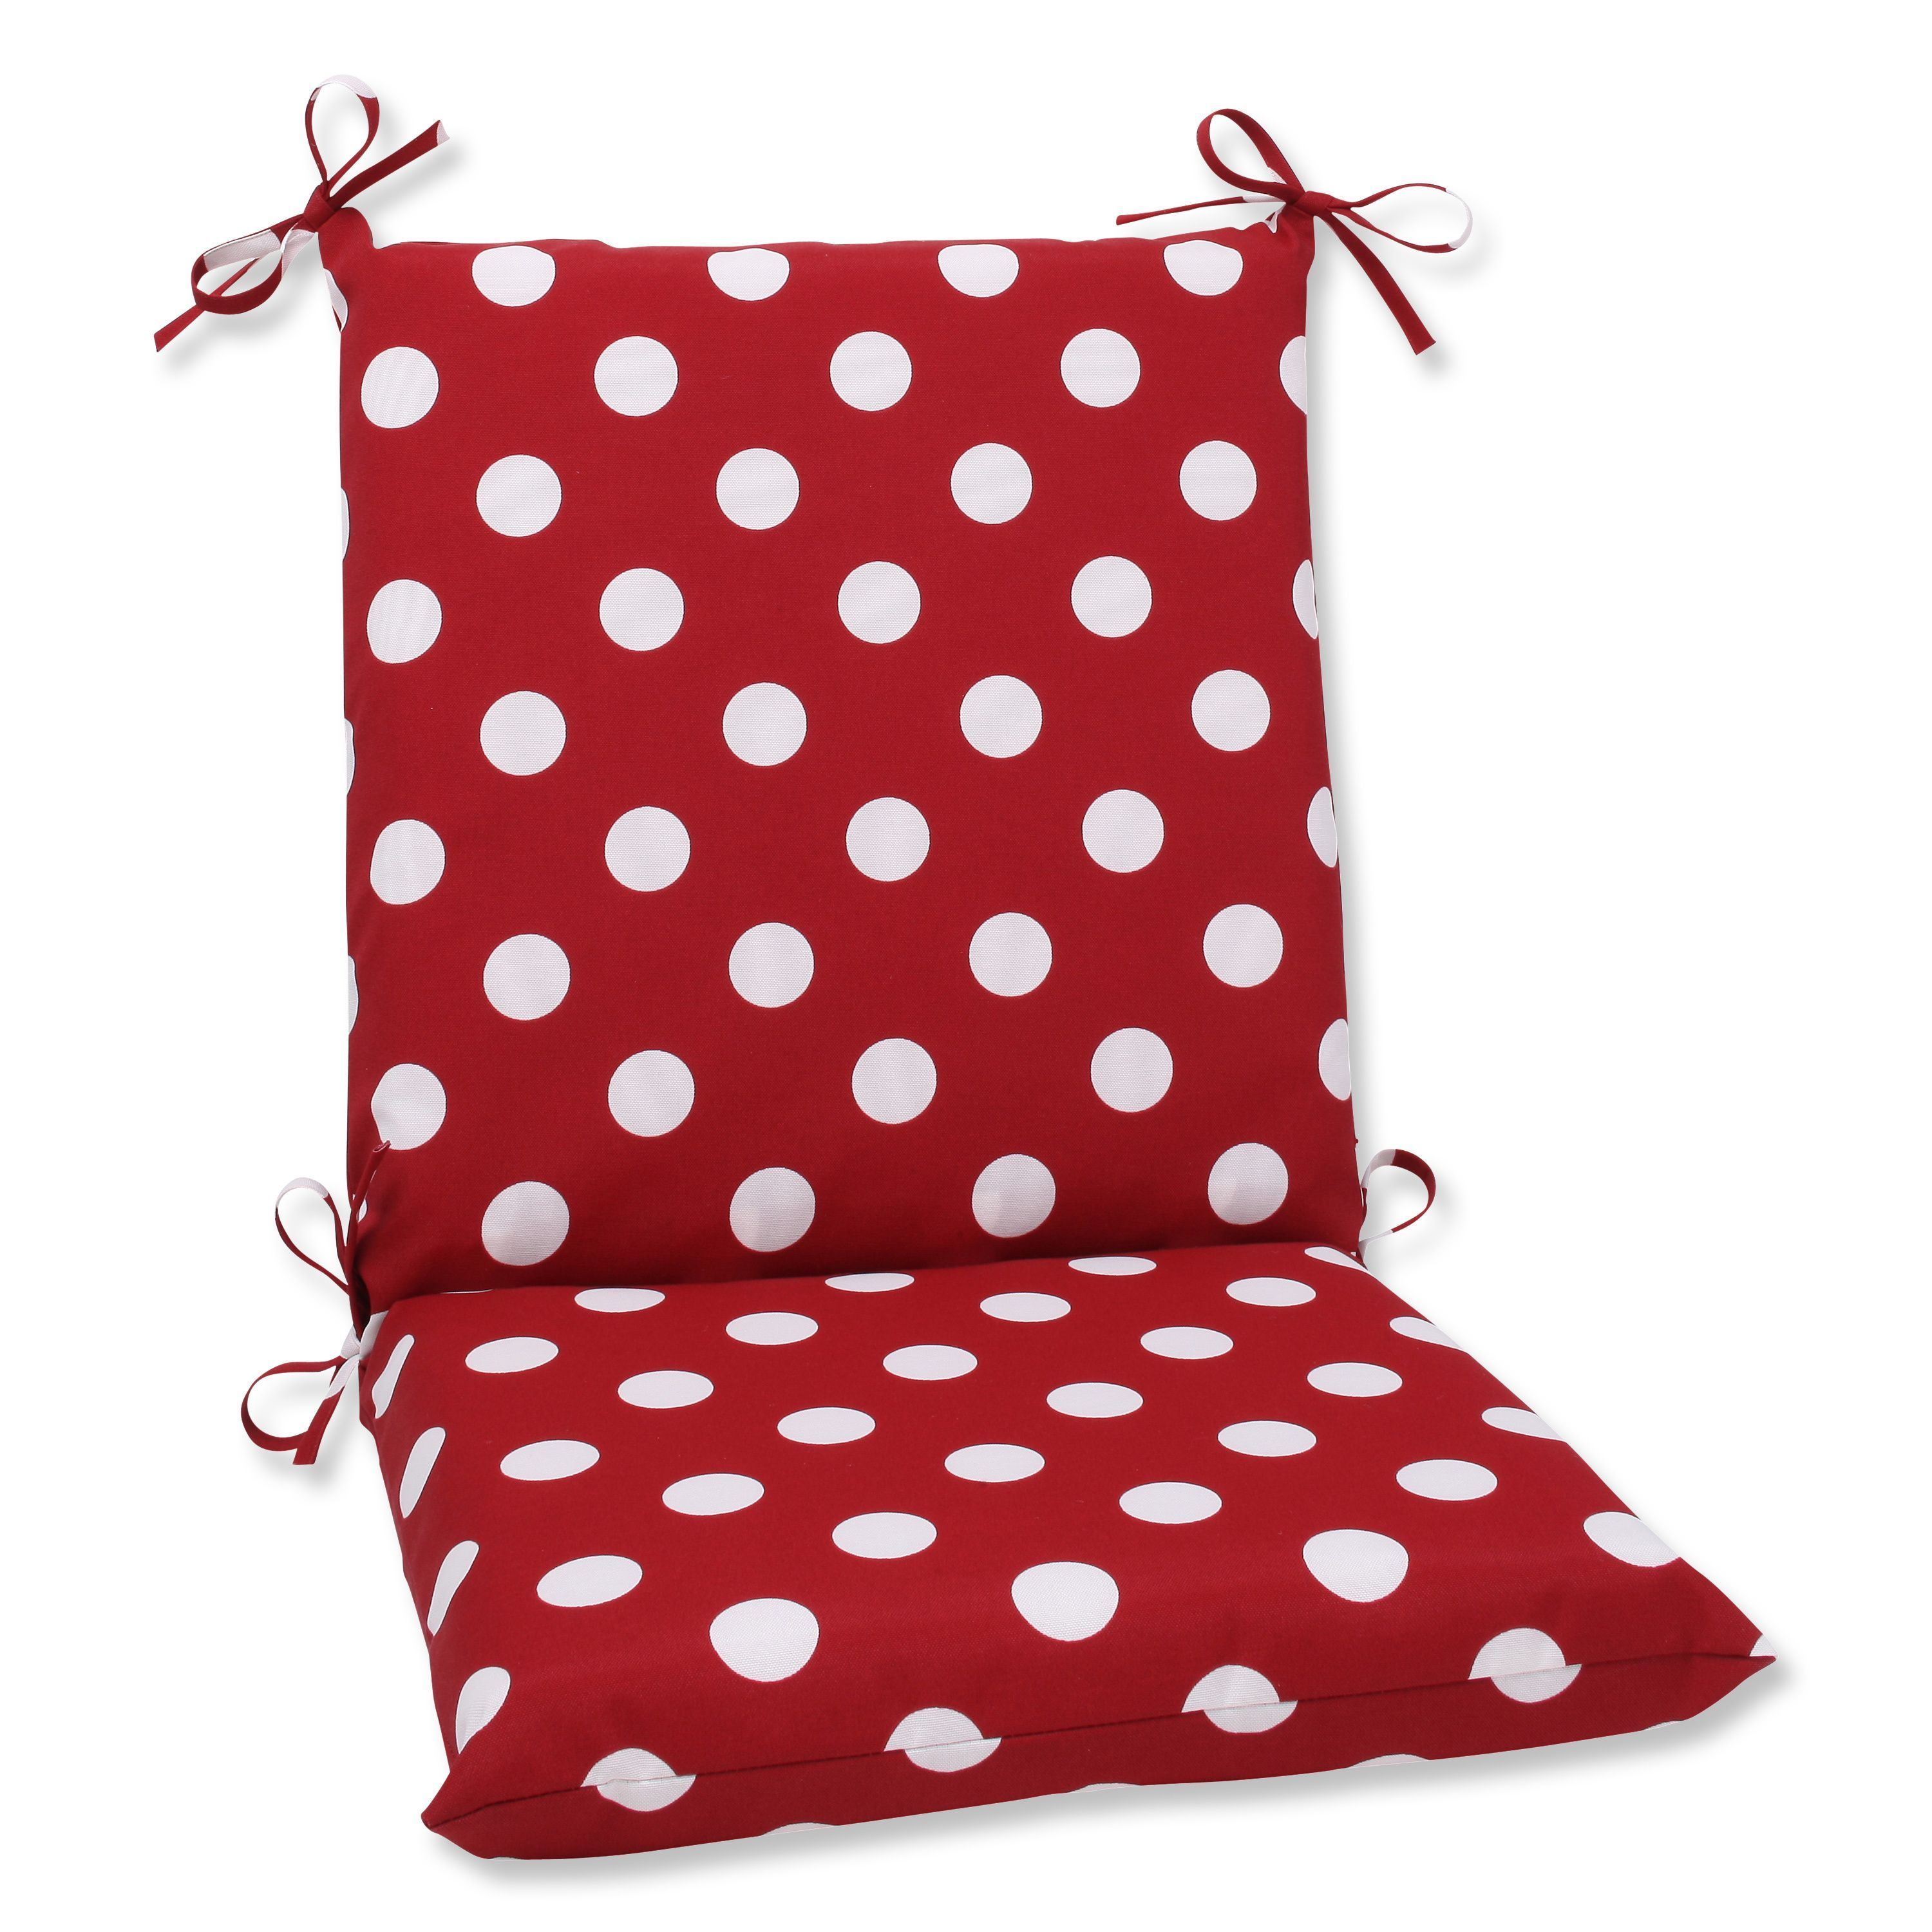 Pillow perfect outdoor red white polka dot square chair cushion